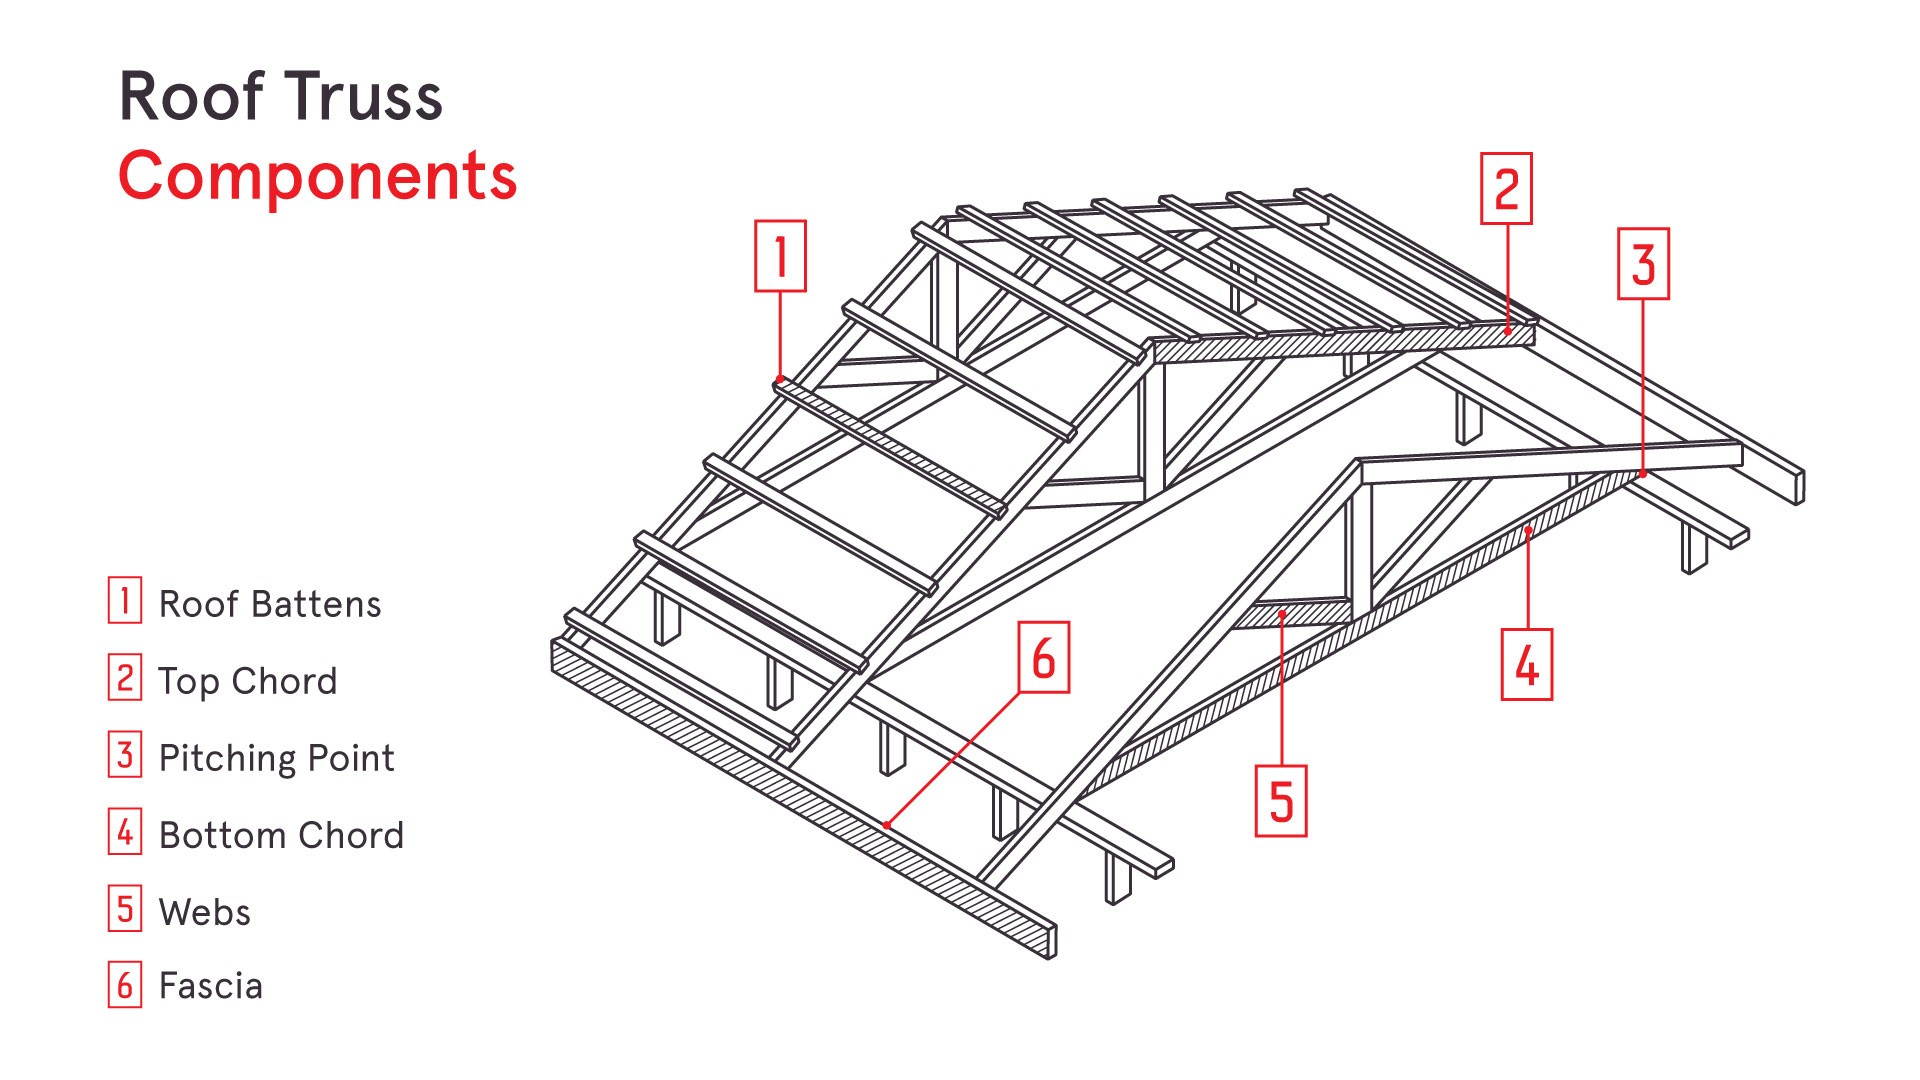 Components Of A Roof Truss